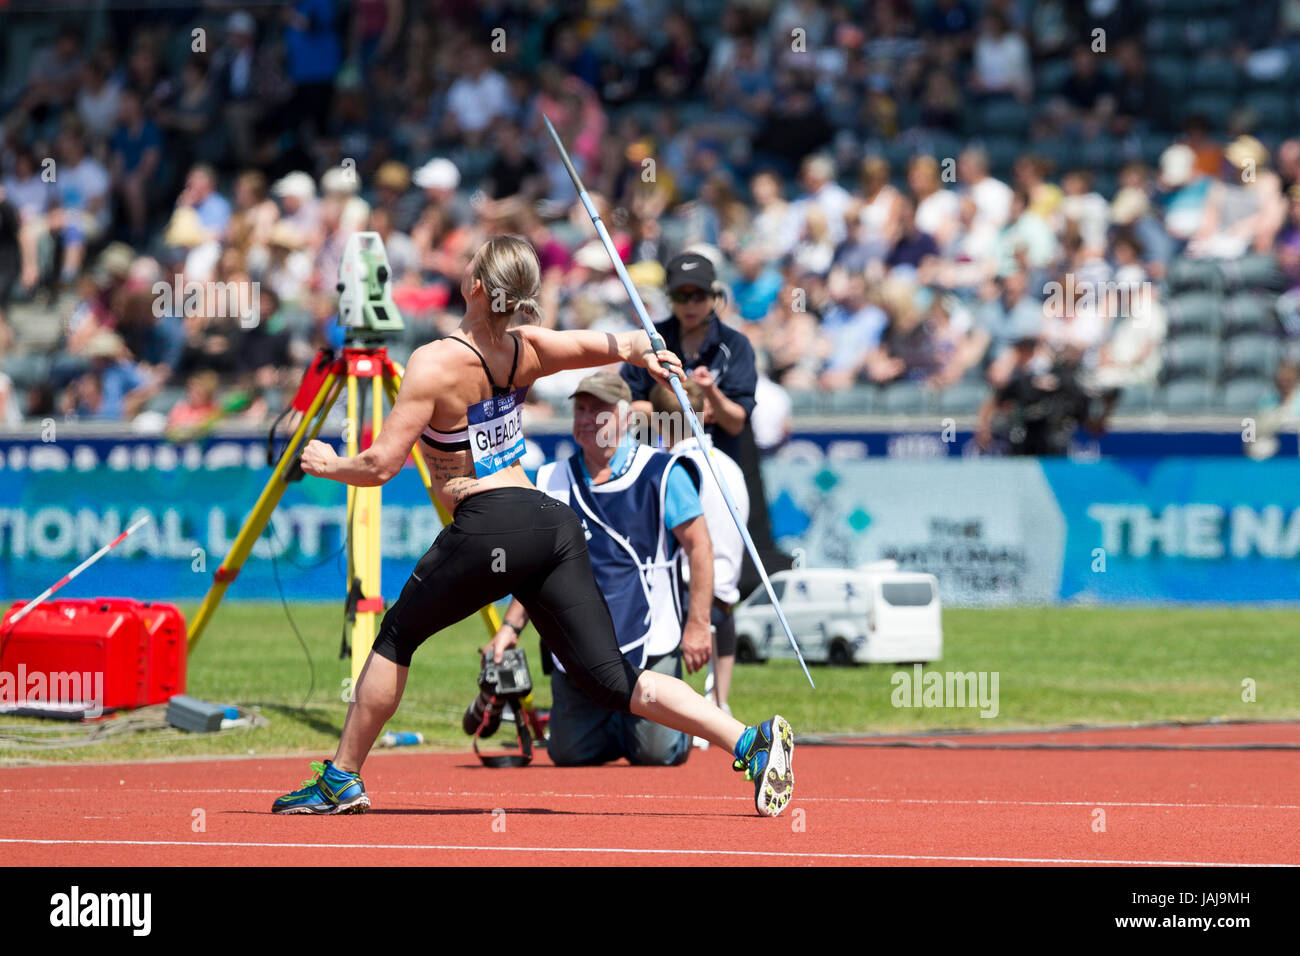 Elizabeth GLEADLE competing in the Javelin at the 2016 Diamond League, Alexander Stadium, Birmingham, UK, 6th June - Stock Image